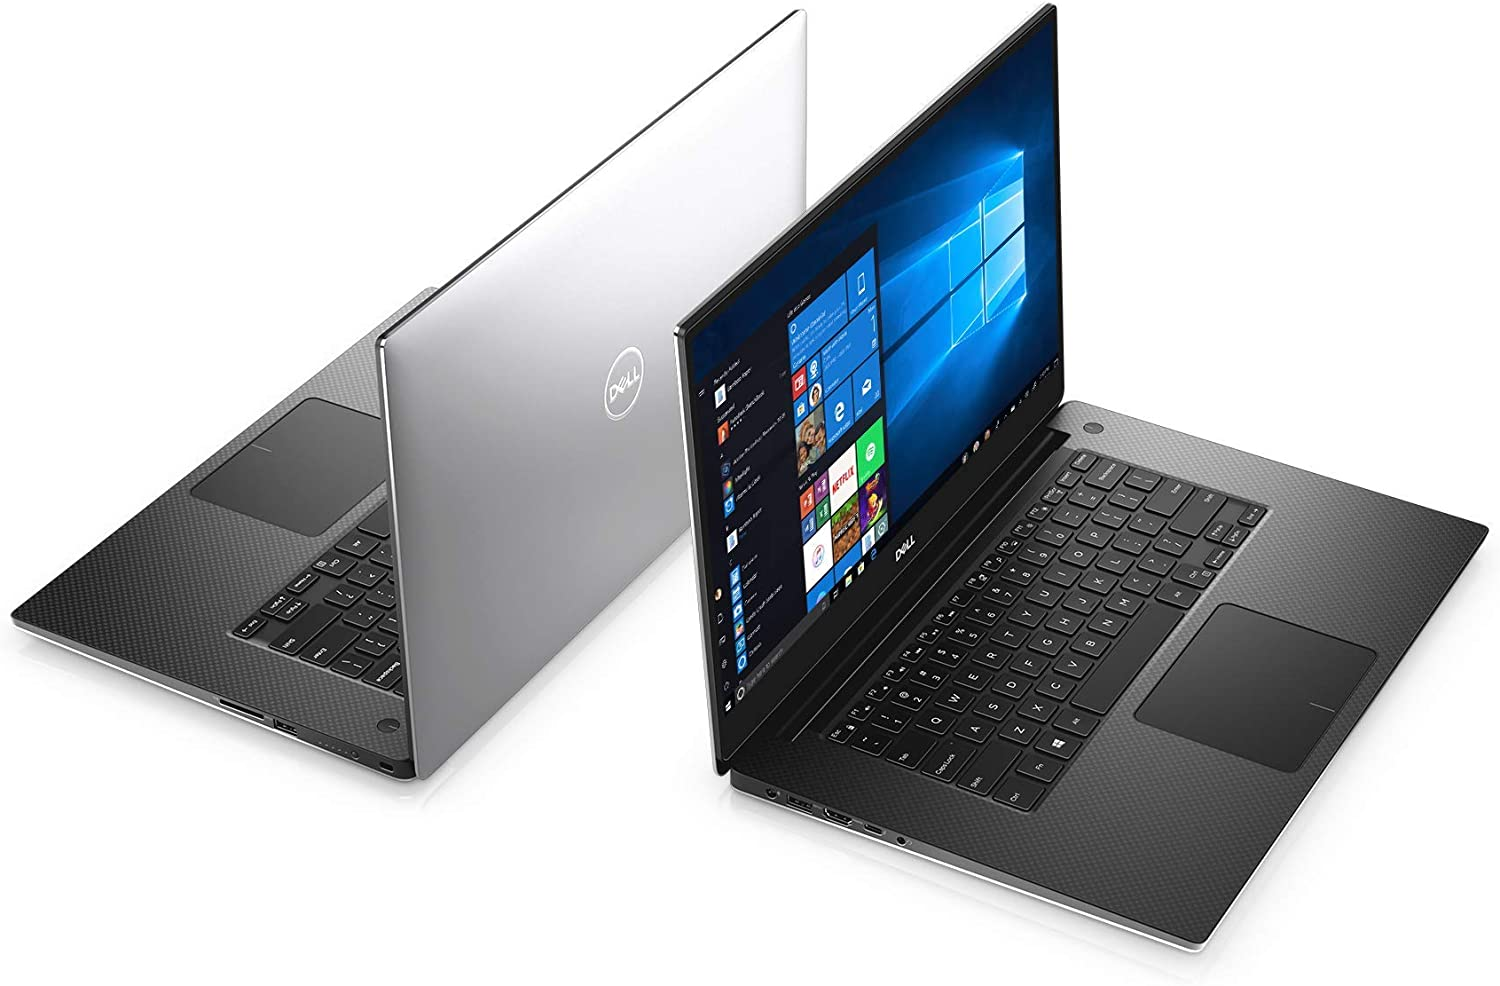 Dell XPS 15 7590,15.6 4K UHD (3840 X 2160) Touch, 9th Gen Intel Core i7-9750H (12MB Cache, up to 4.5 GHz, 6 Cores), 16GB DDR4-2666MHz RAM, 1TB SSD, NVIDIA GeForce GTX 1650 4GB GDDR5 (Renewed)